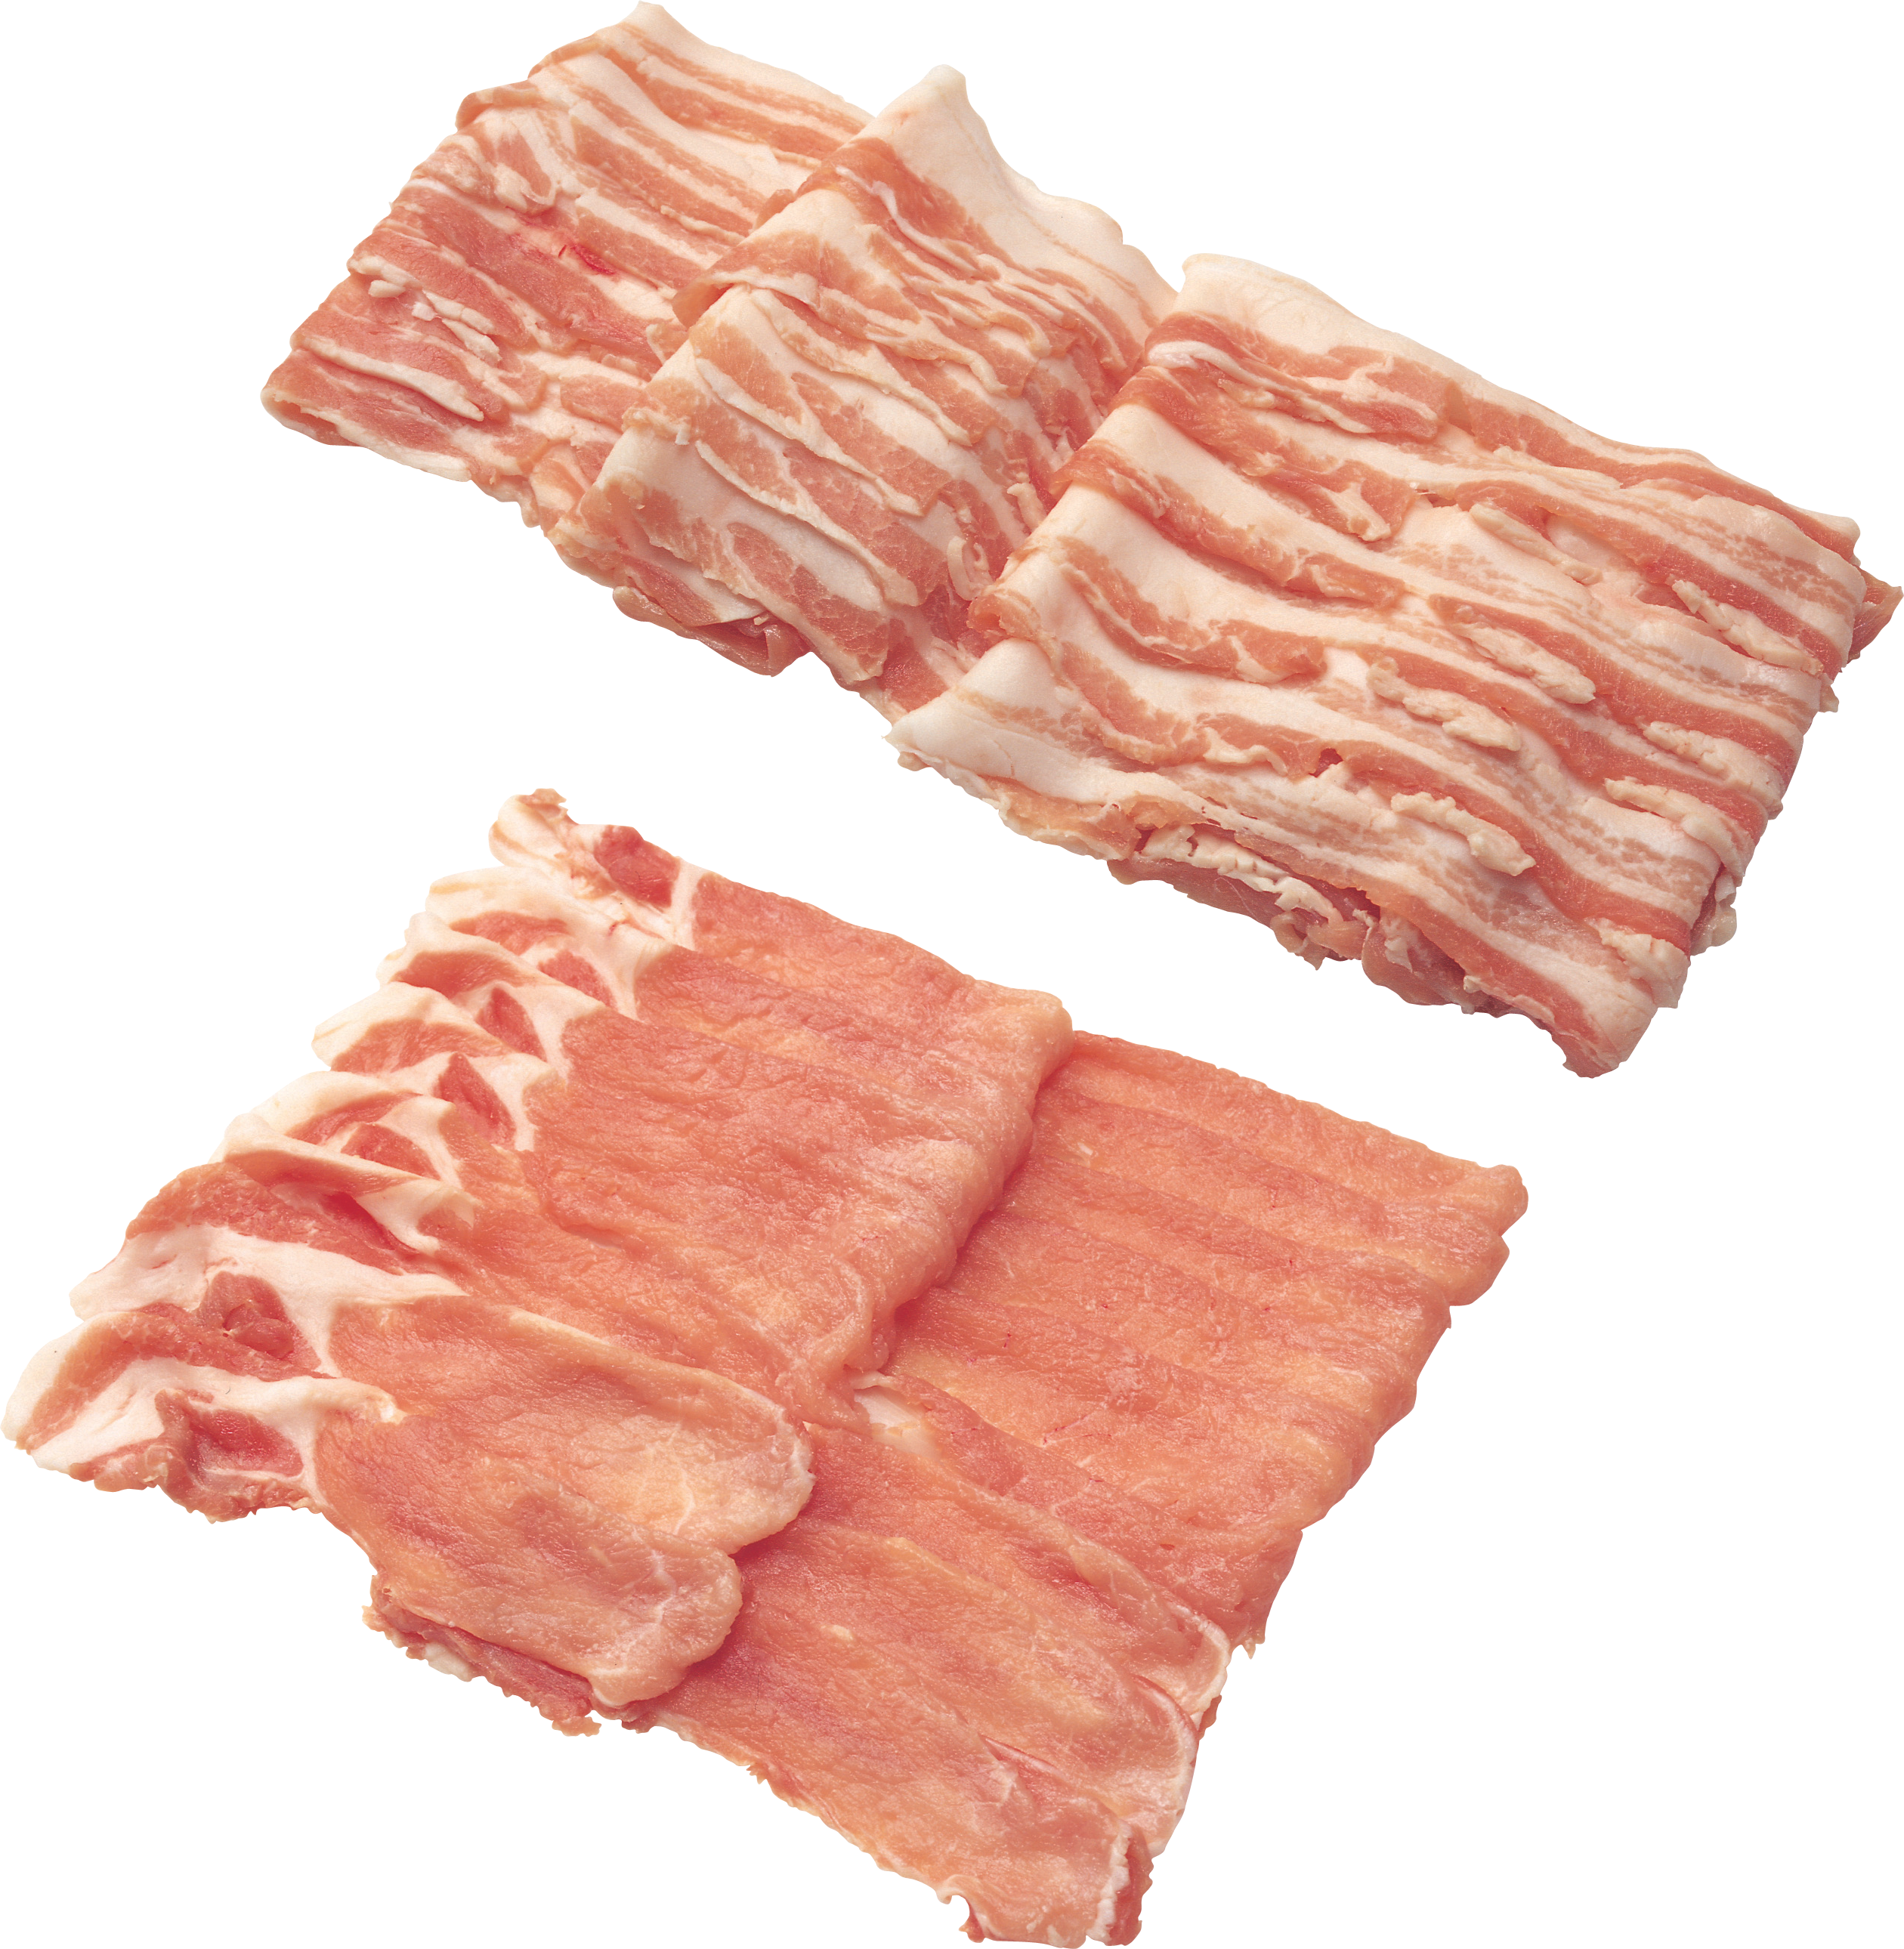 Bacon PNG Images Free Download, Bacon PNG image #44386